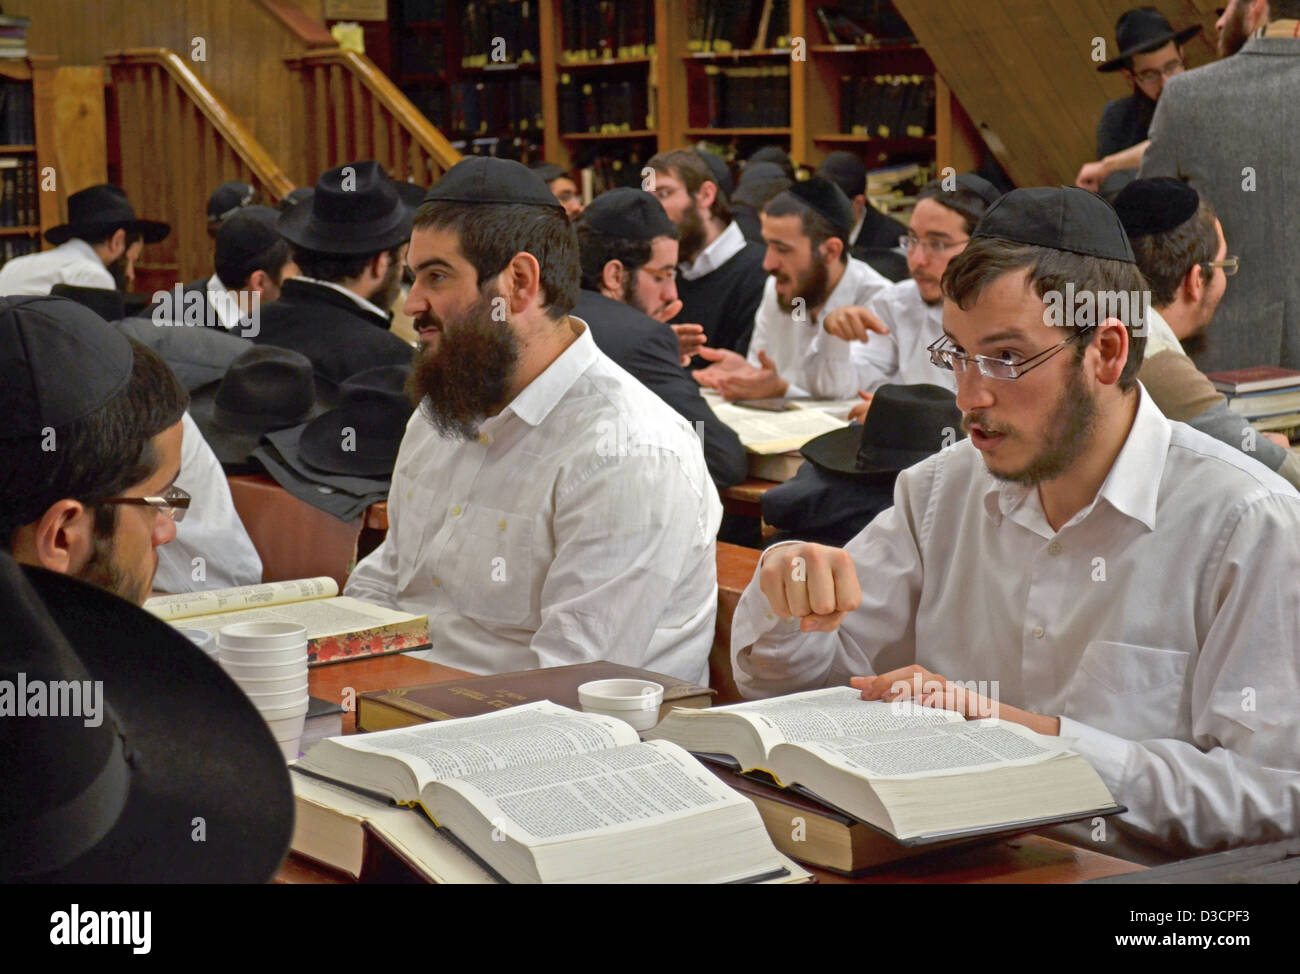 Hasidic students studying Talmud at a school in a synagogue at 770 Eastern Parkway in Brooklyn, New York. - Stock Image